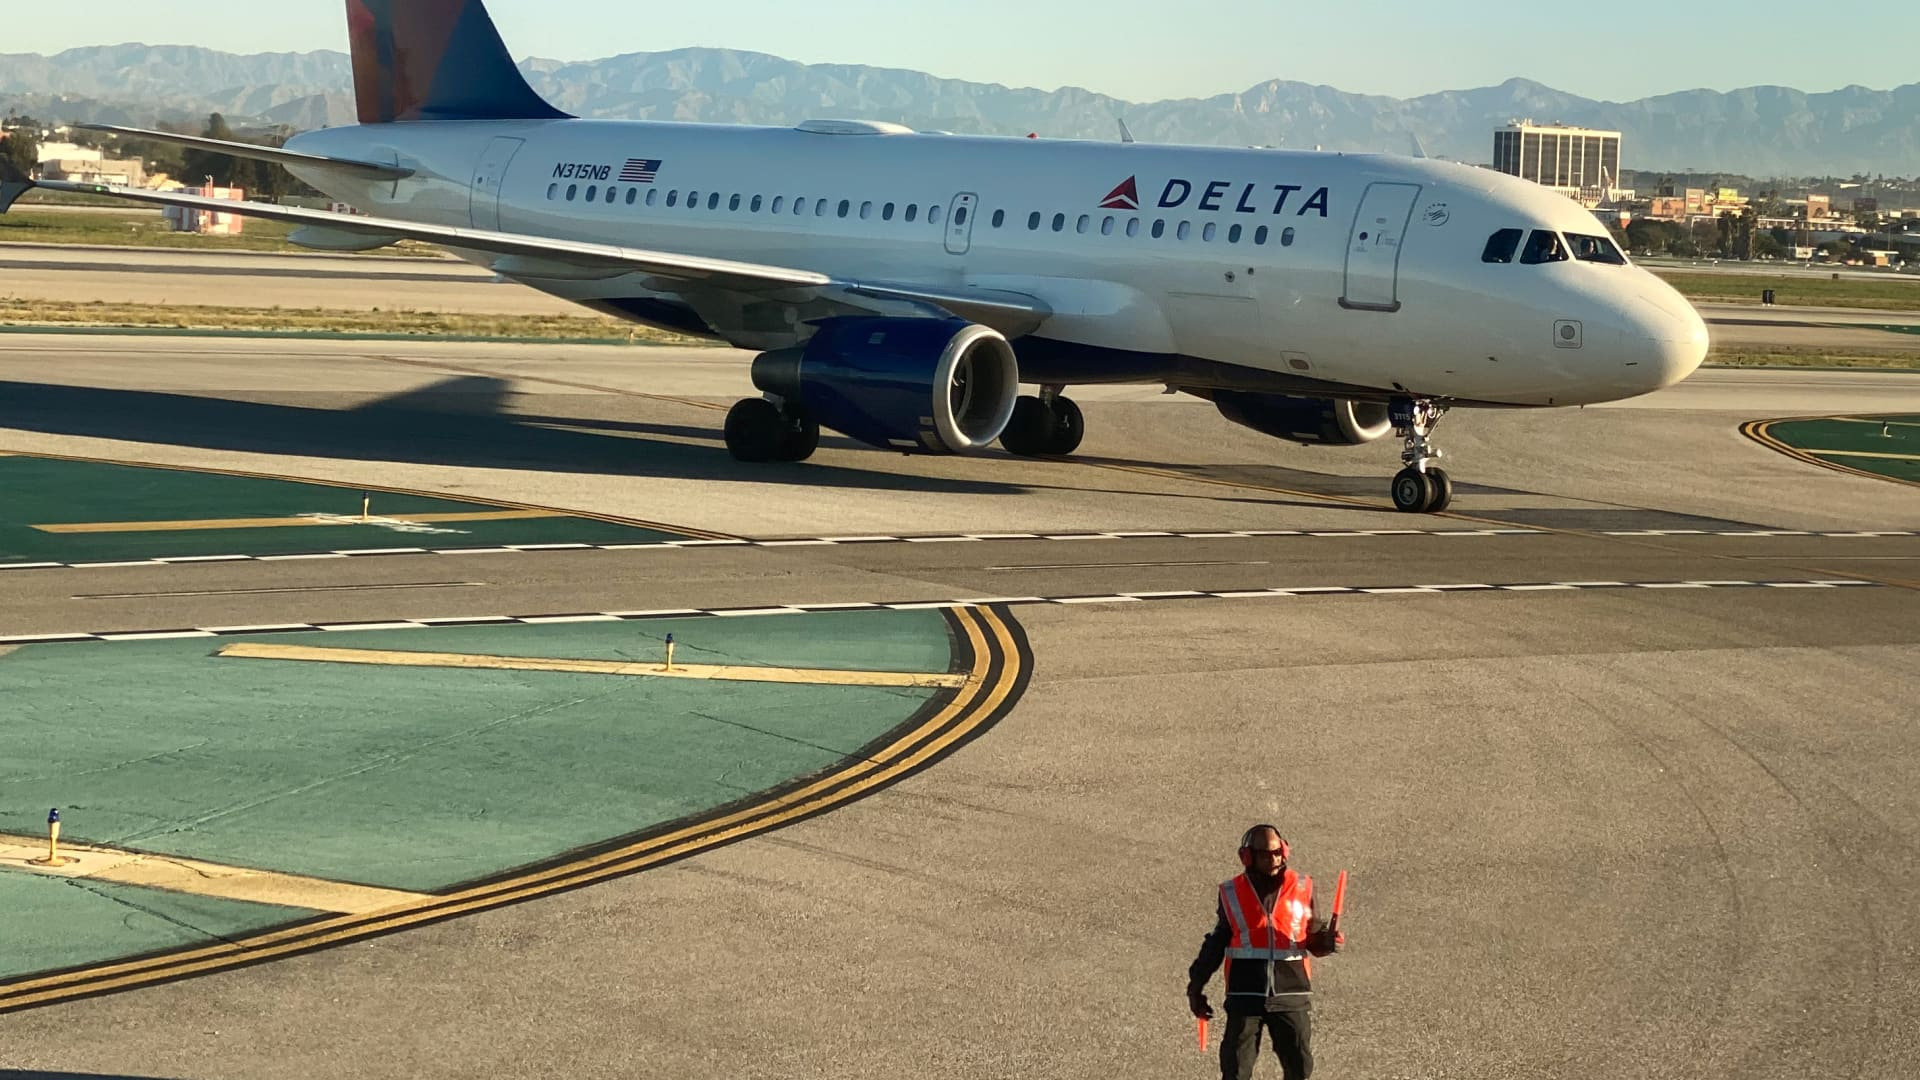 An airport worker guides a Delta Air Lines Airbus A319-100 plane on the tarmac at LAX in Los Angeles, California, U.S., January 6, 2020.